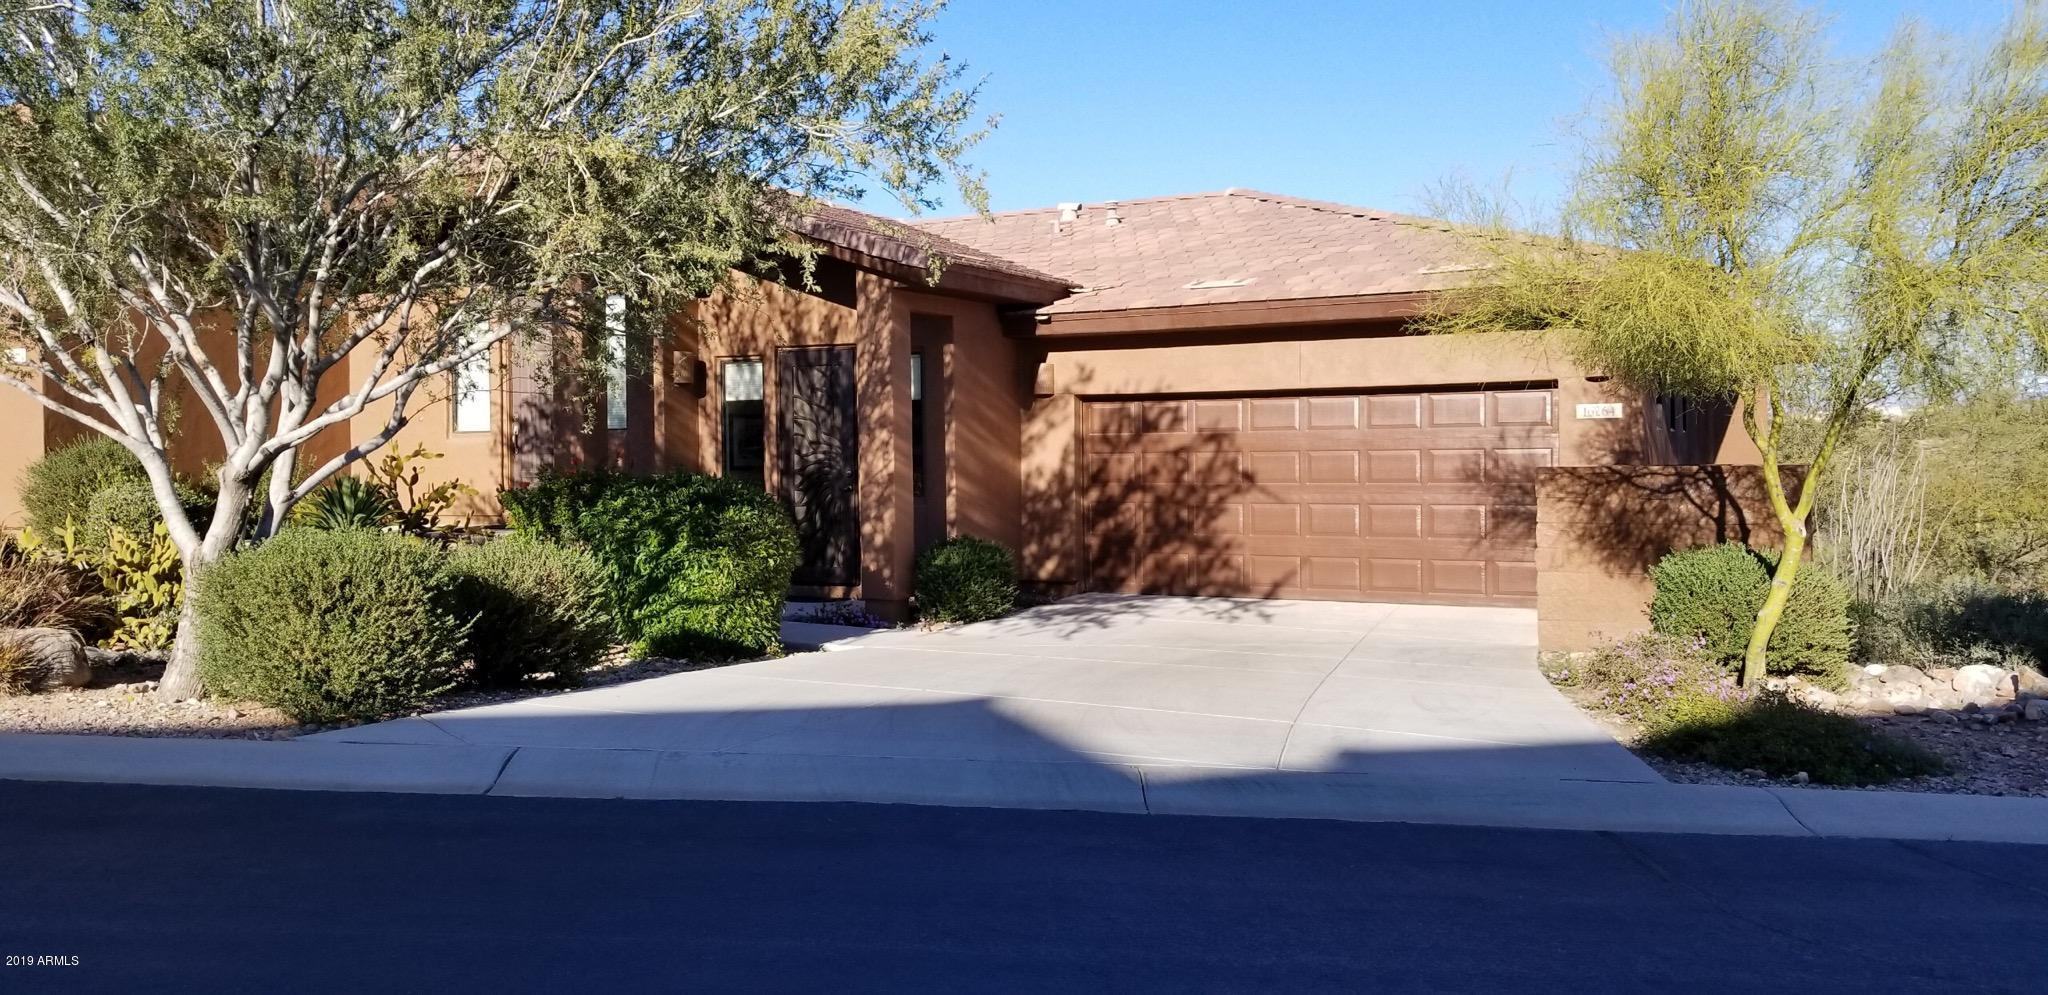 Photo of 16264 E RIDGELINE Drive, Fountain Hills, AZ 85268